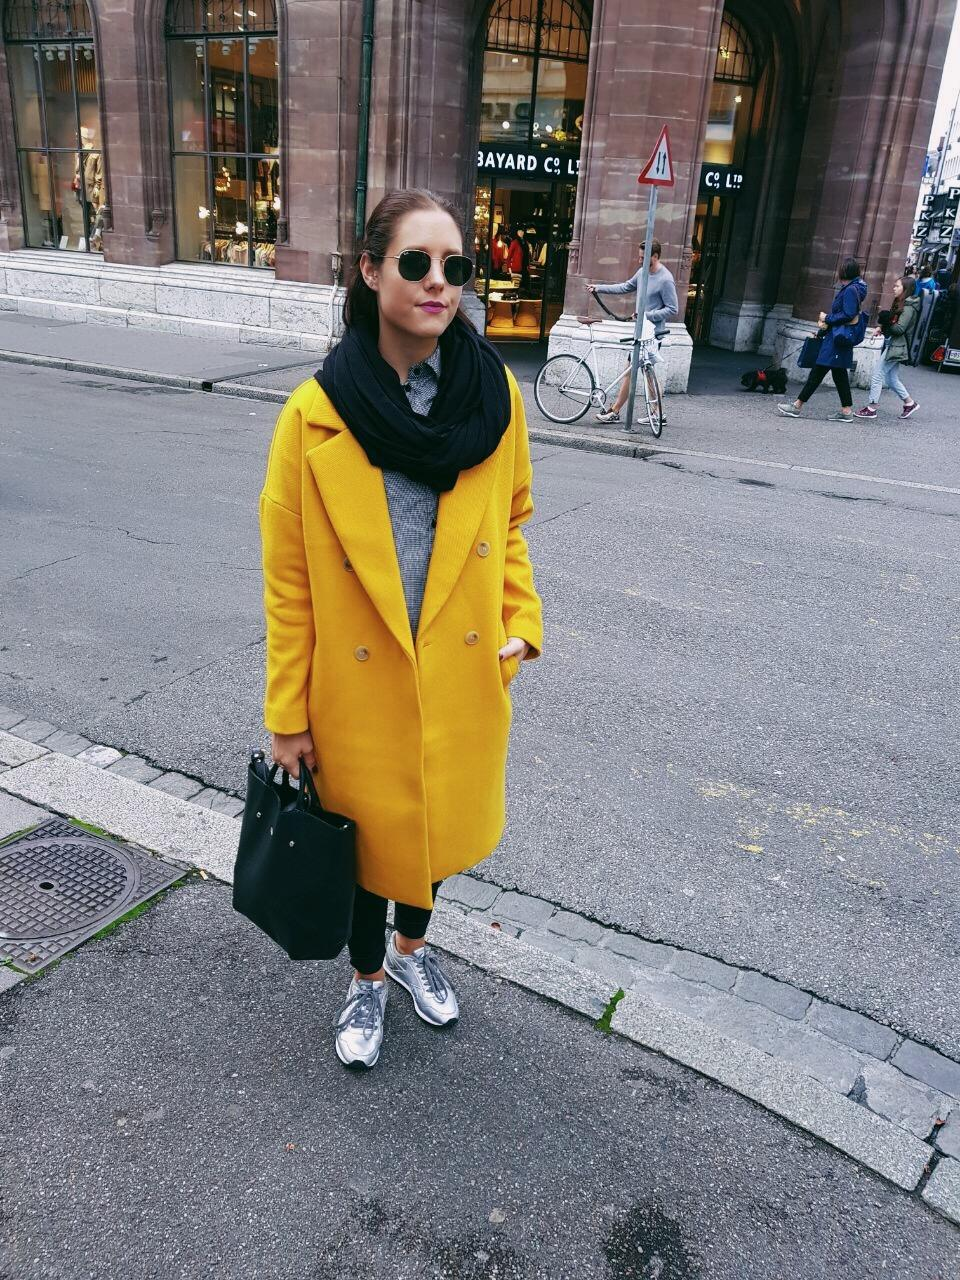 Liebe auf den ersten Blick 😍 #coloryourday #colors #fashion #fashiondaily #style #streetstyle #yellow #urban #urbanstyle